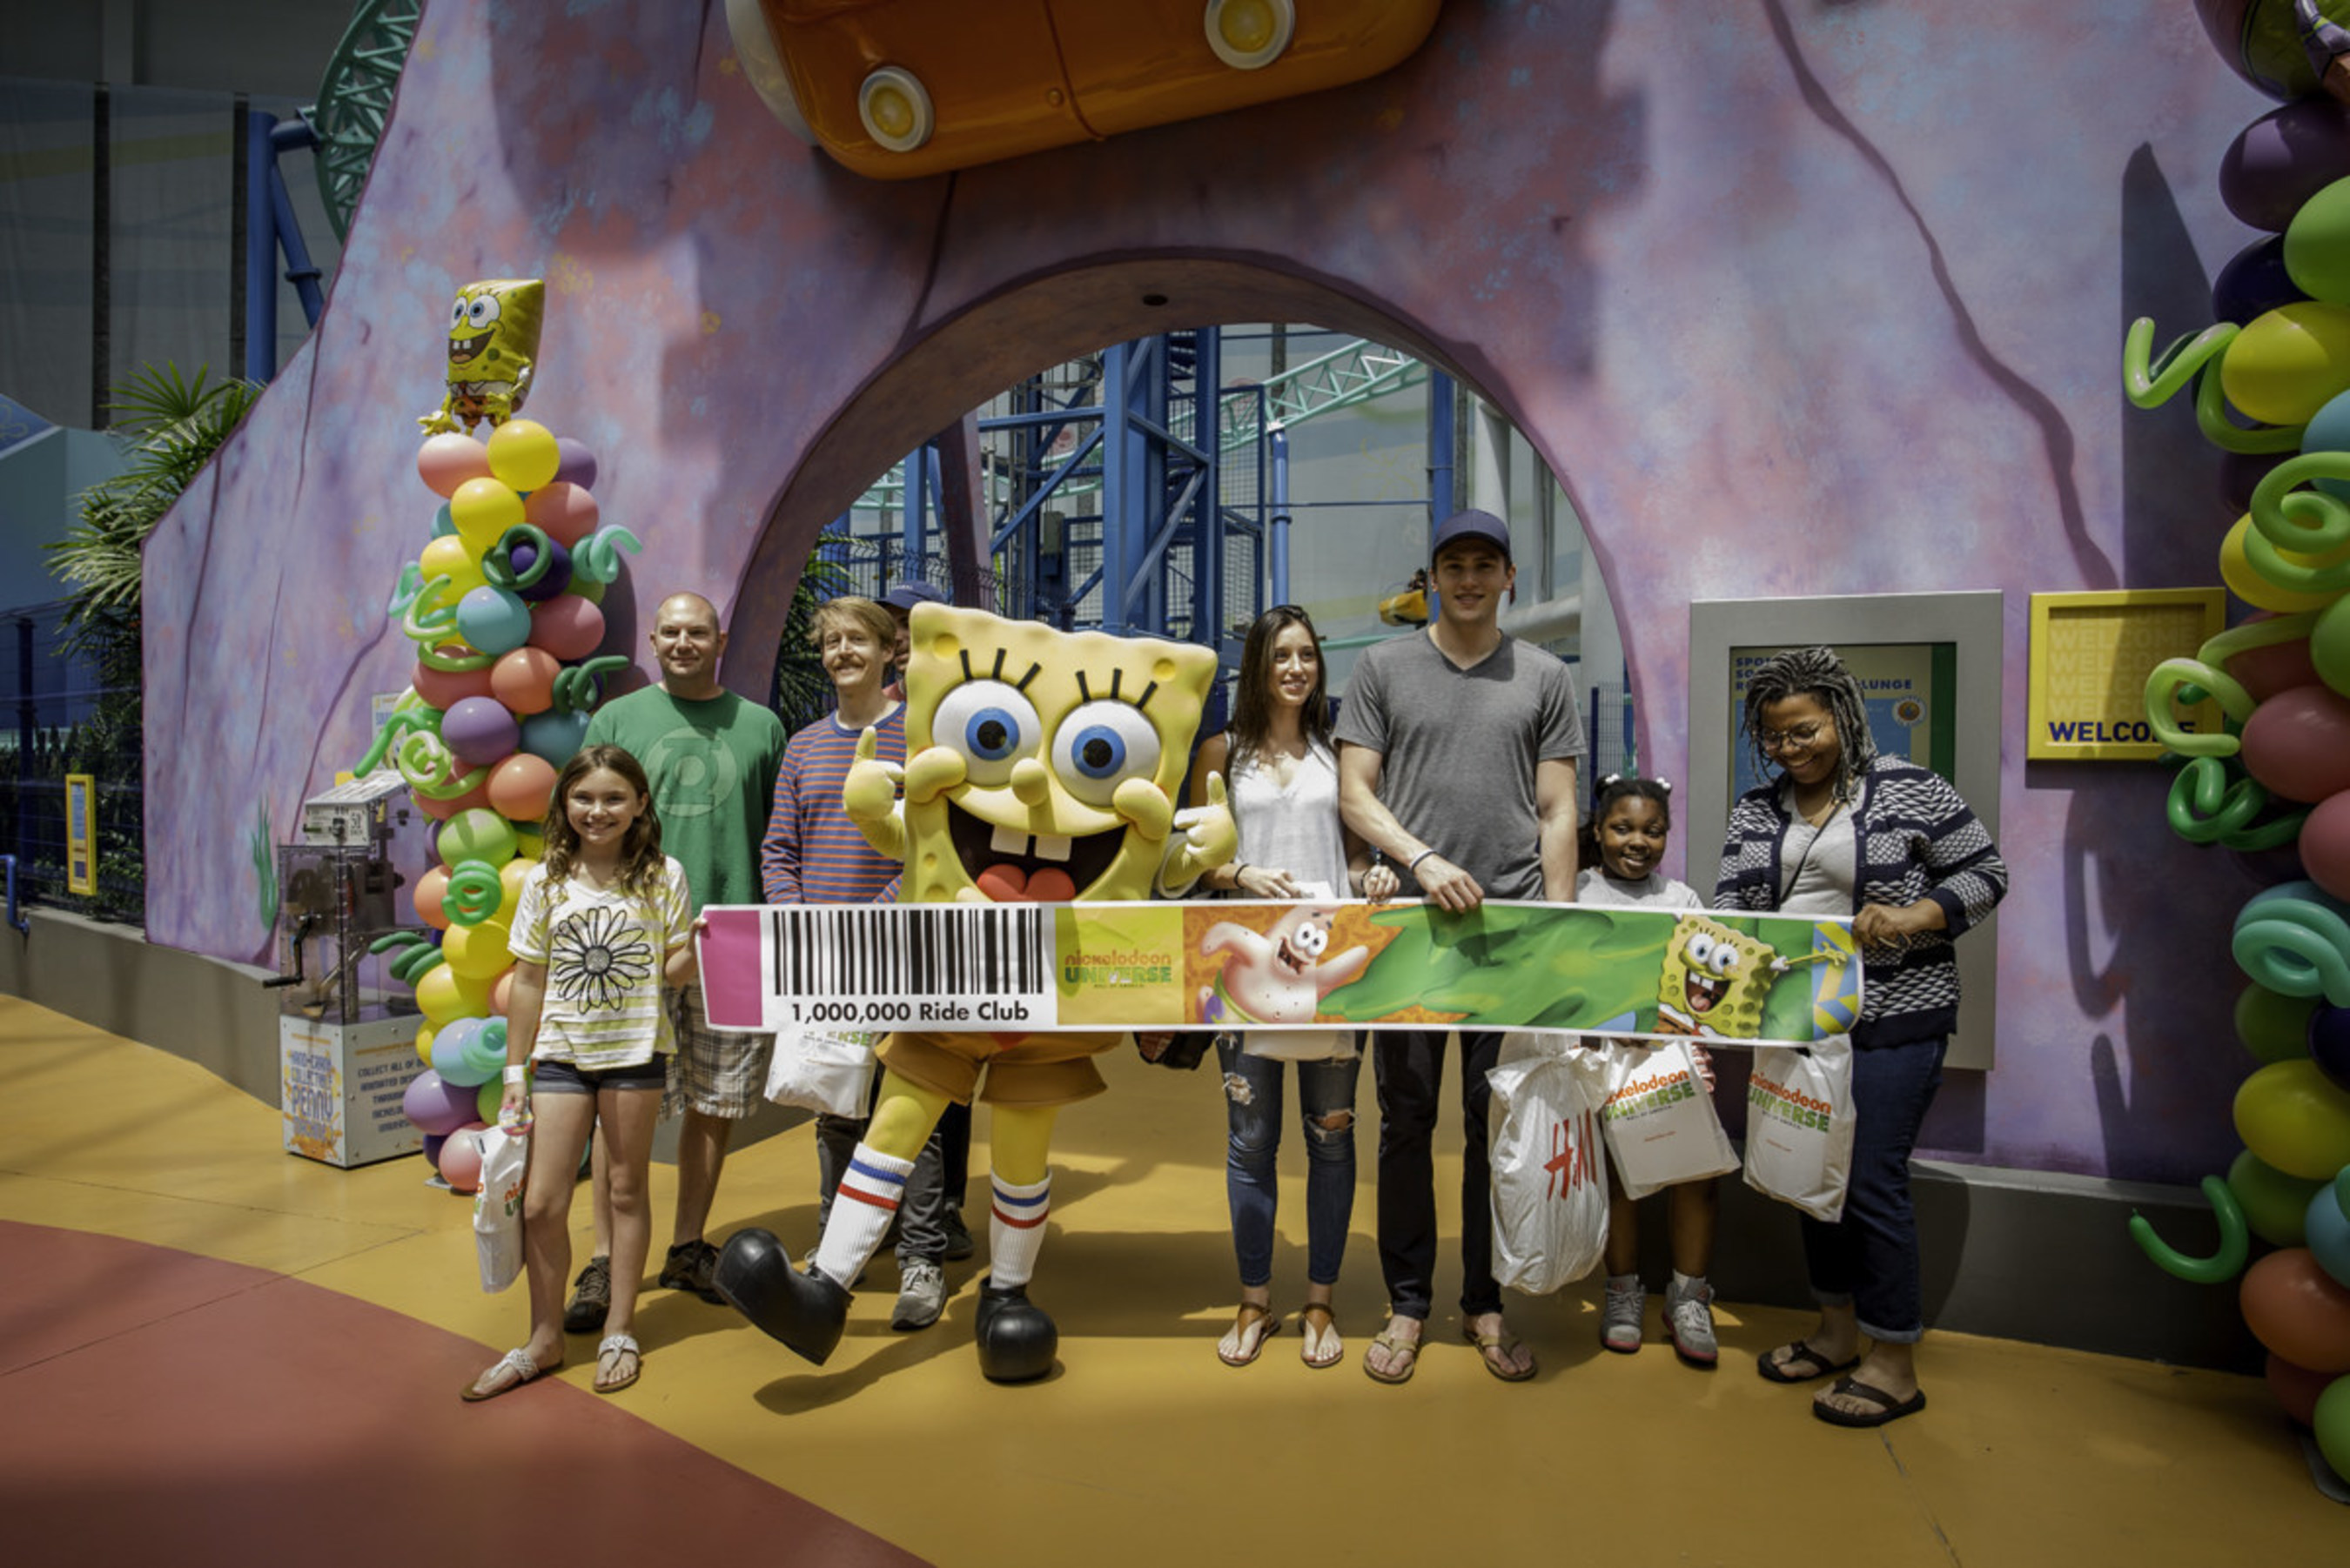 Eight lucky guests receive 1 million free rides to Nickelodeon Universe after riding the 1 millionth coaster cart on the thrilling SpongeBob Rock Bottom Plunge ride in Nickelodeon Universe at Mall of America.